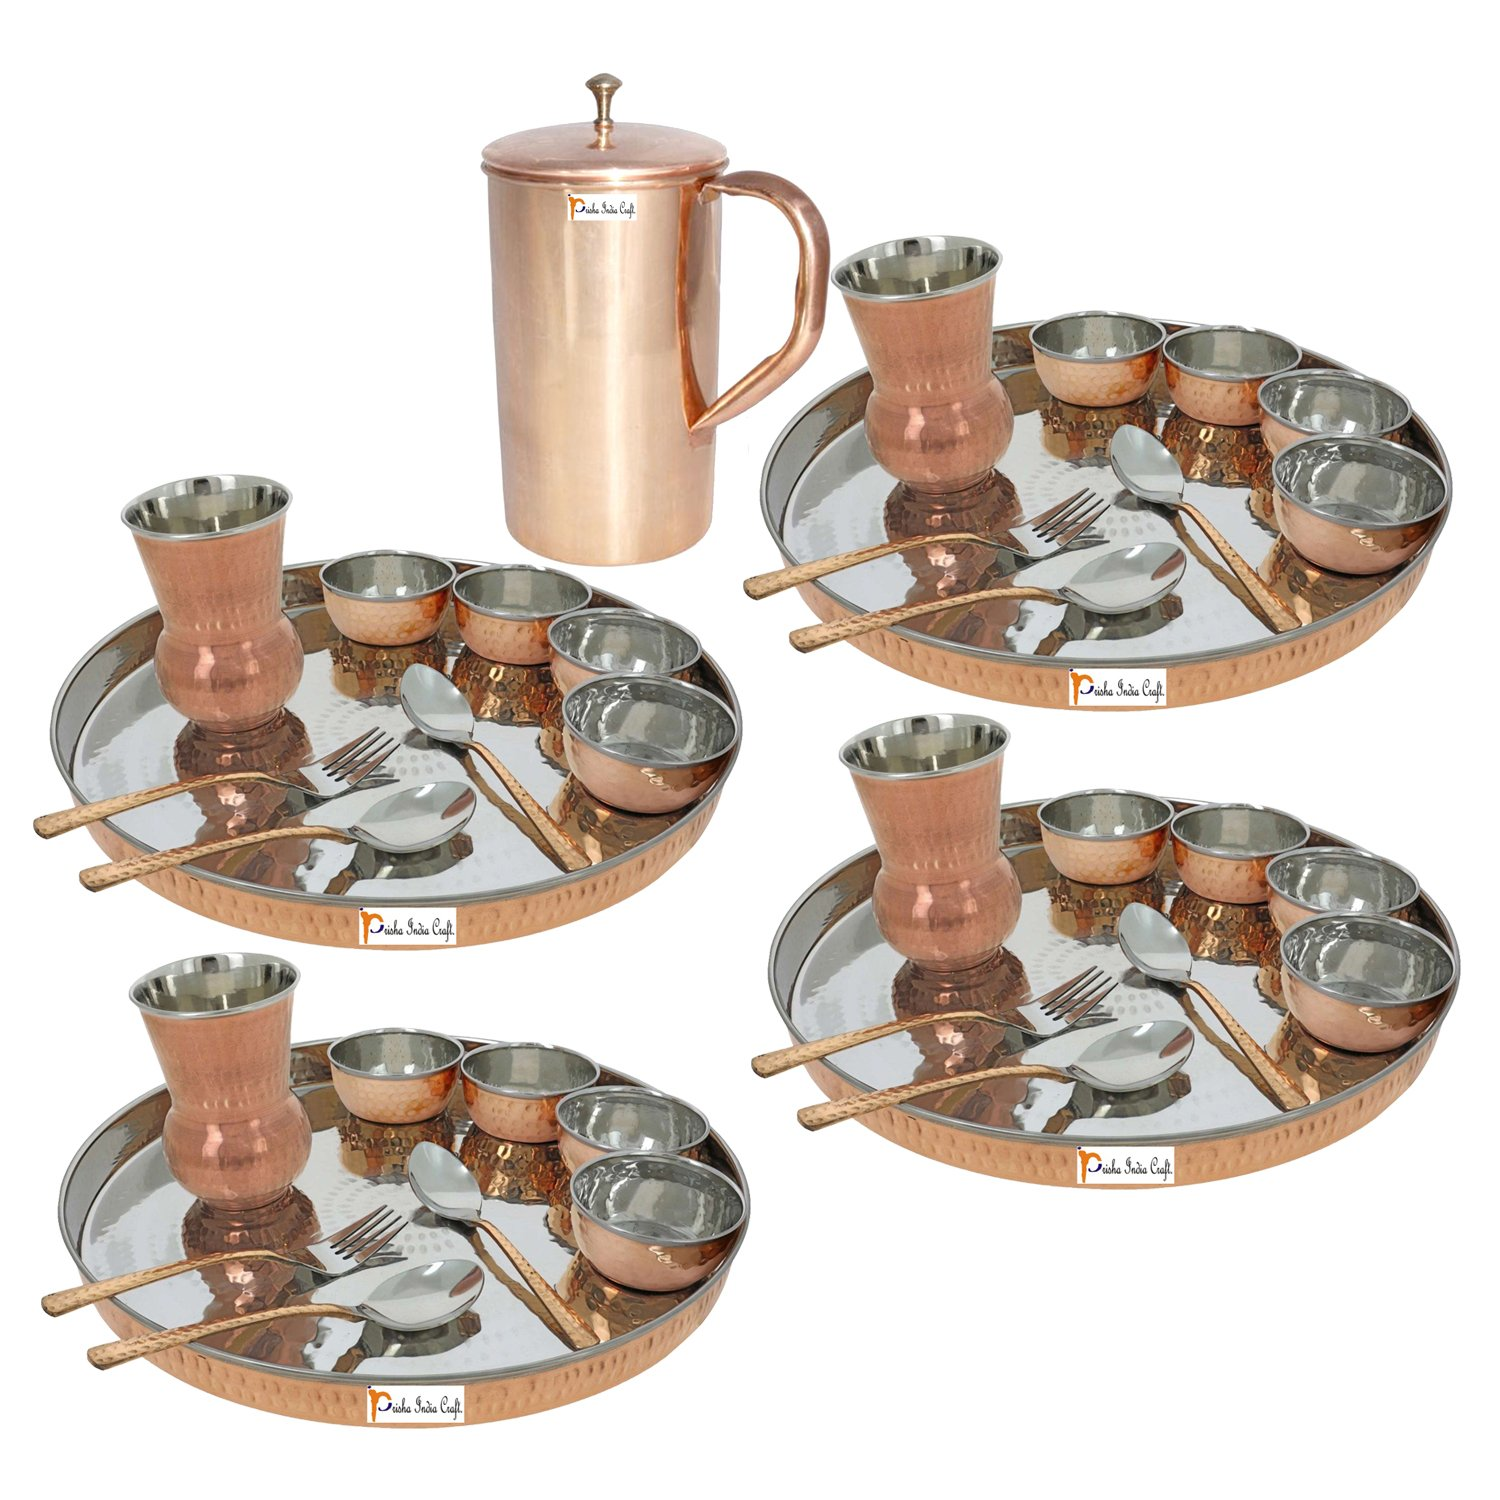 Prisha India Craft ® Set of 4 Dinnerware Traditional Stainless Steel Copper Dinner Set of Thali Plate, Bowls, Glass and Spoons, Dia 13'' With 1 Pure Copper Classic Pitcher Jug - Christmas Gift